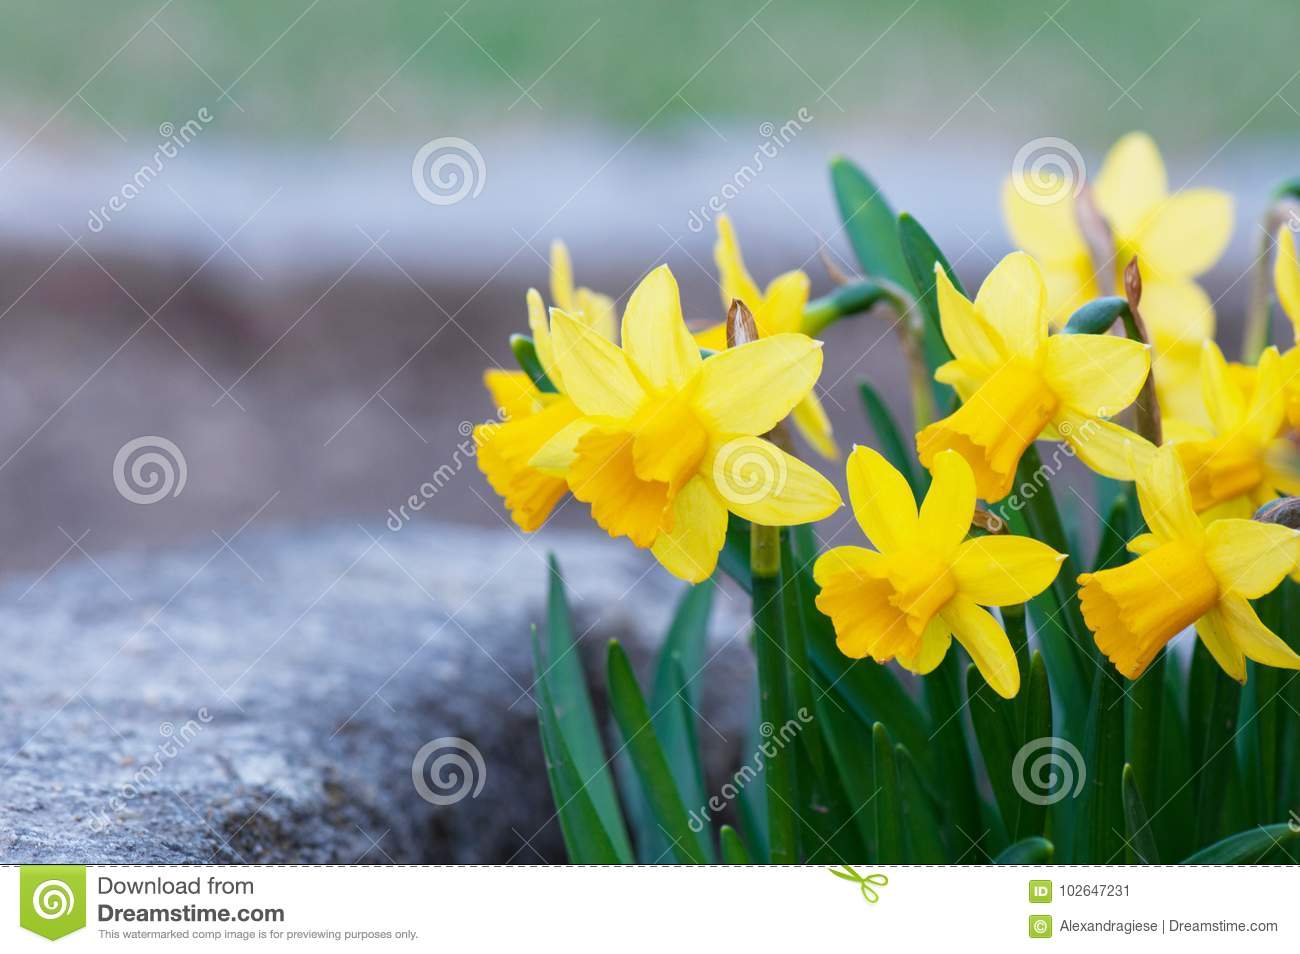 Yellow narcissus flowerbed